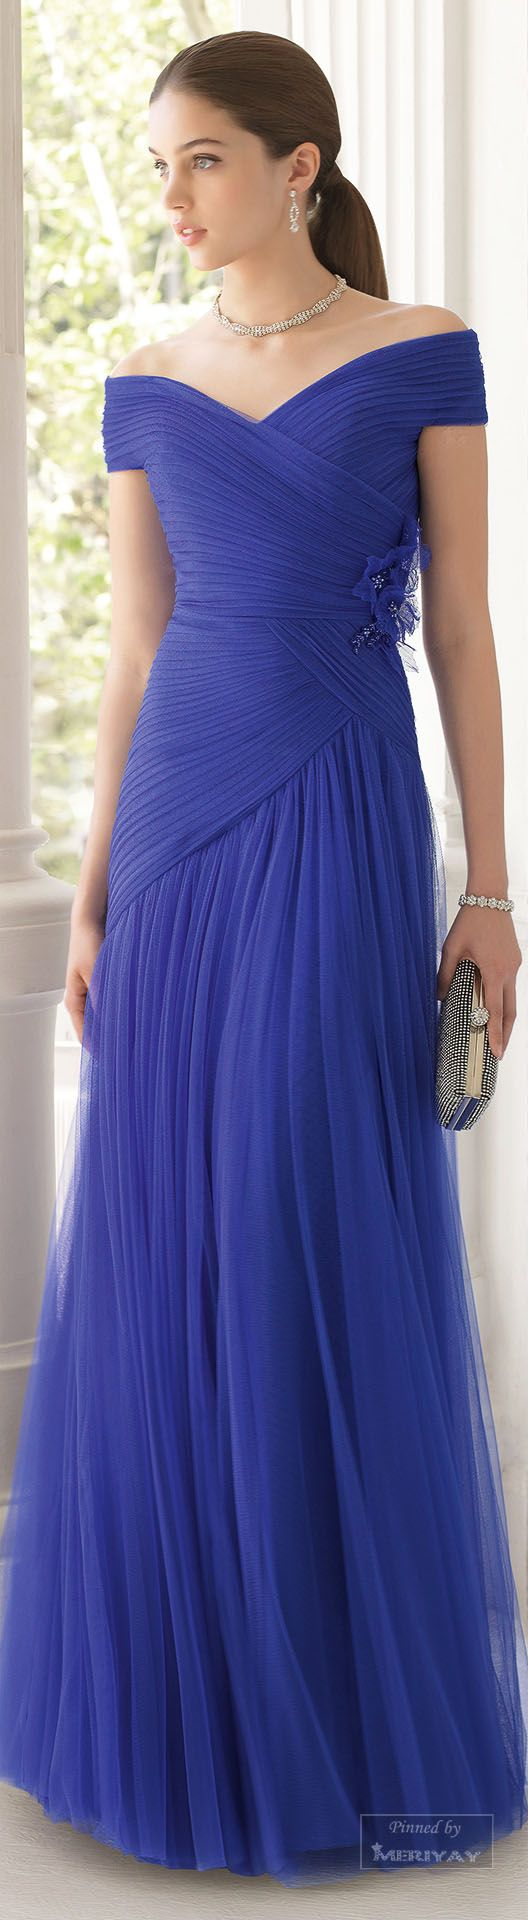 Aire Barcelona ~ Off the Shoulder Violet Pleated Chiffon Gown 2015.